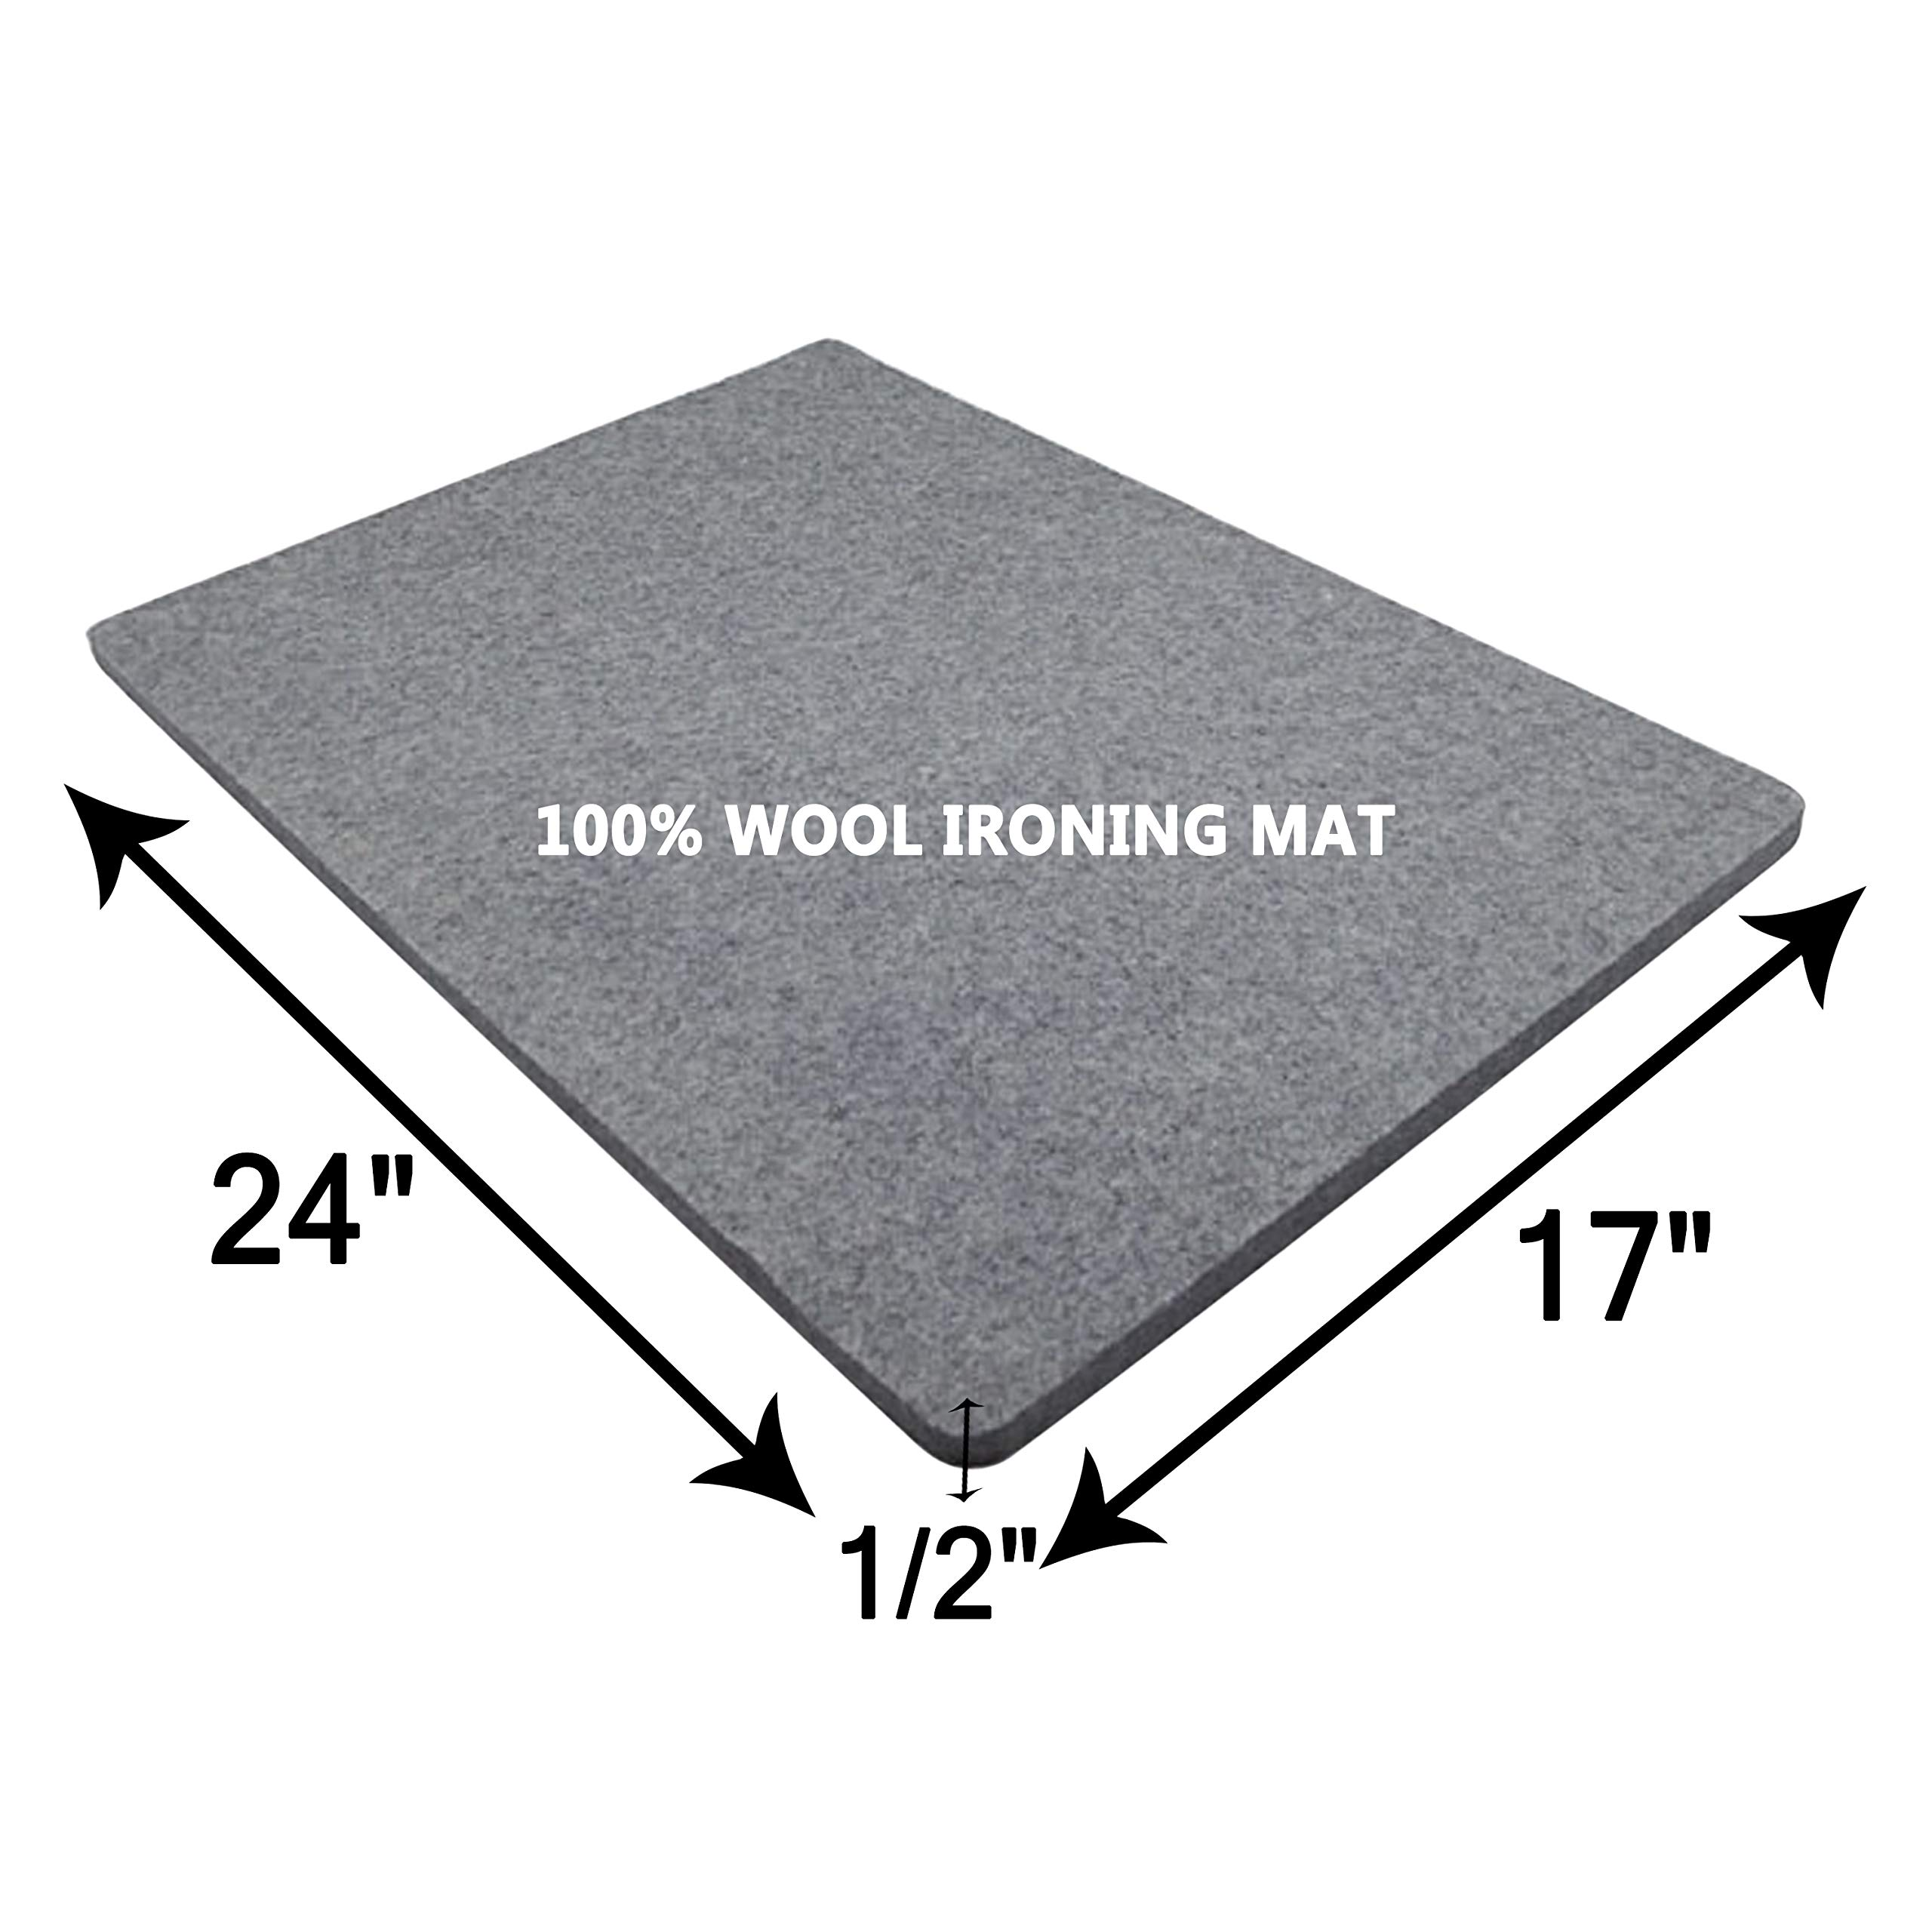 Wool Ironing Mat-Pad Made with 100% New Zealand Wool Pressing Pad Great for Traveling and Quilting Holds Heat When Pressing to Provide Professional Results Ironing Board Cover (Gray, 17x24)